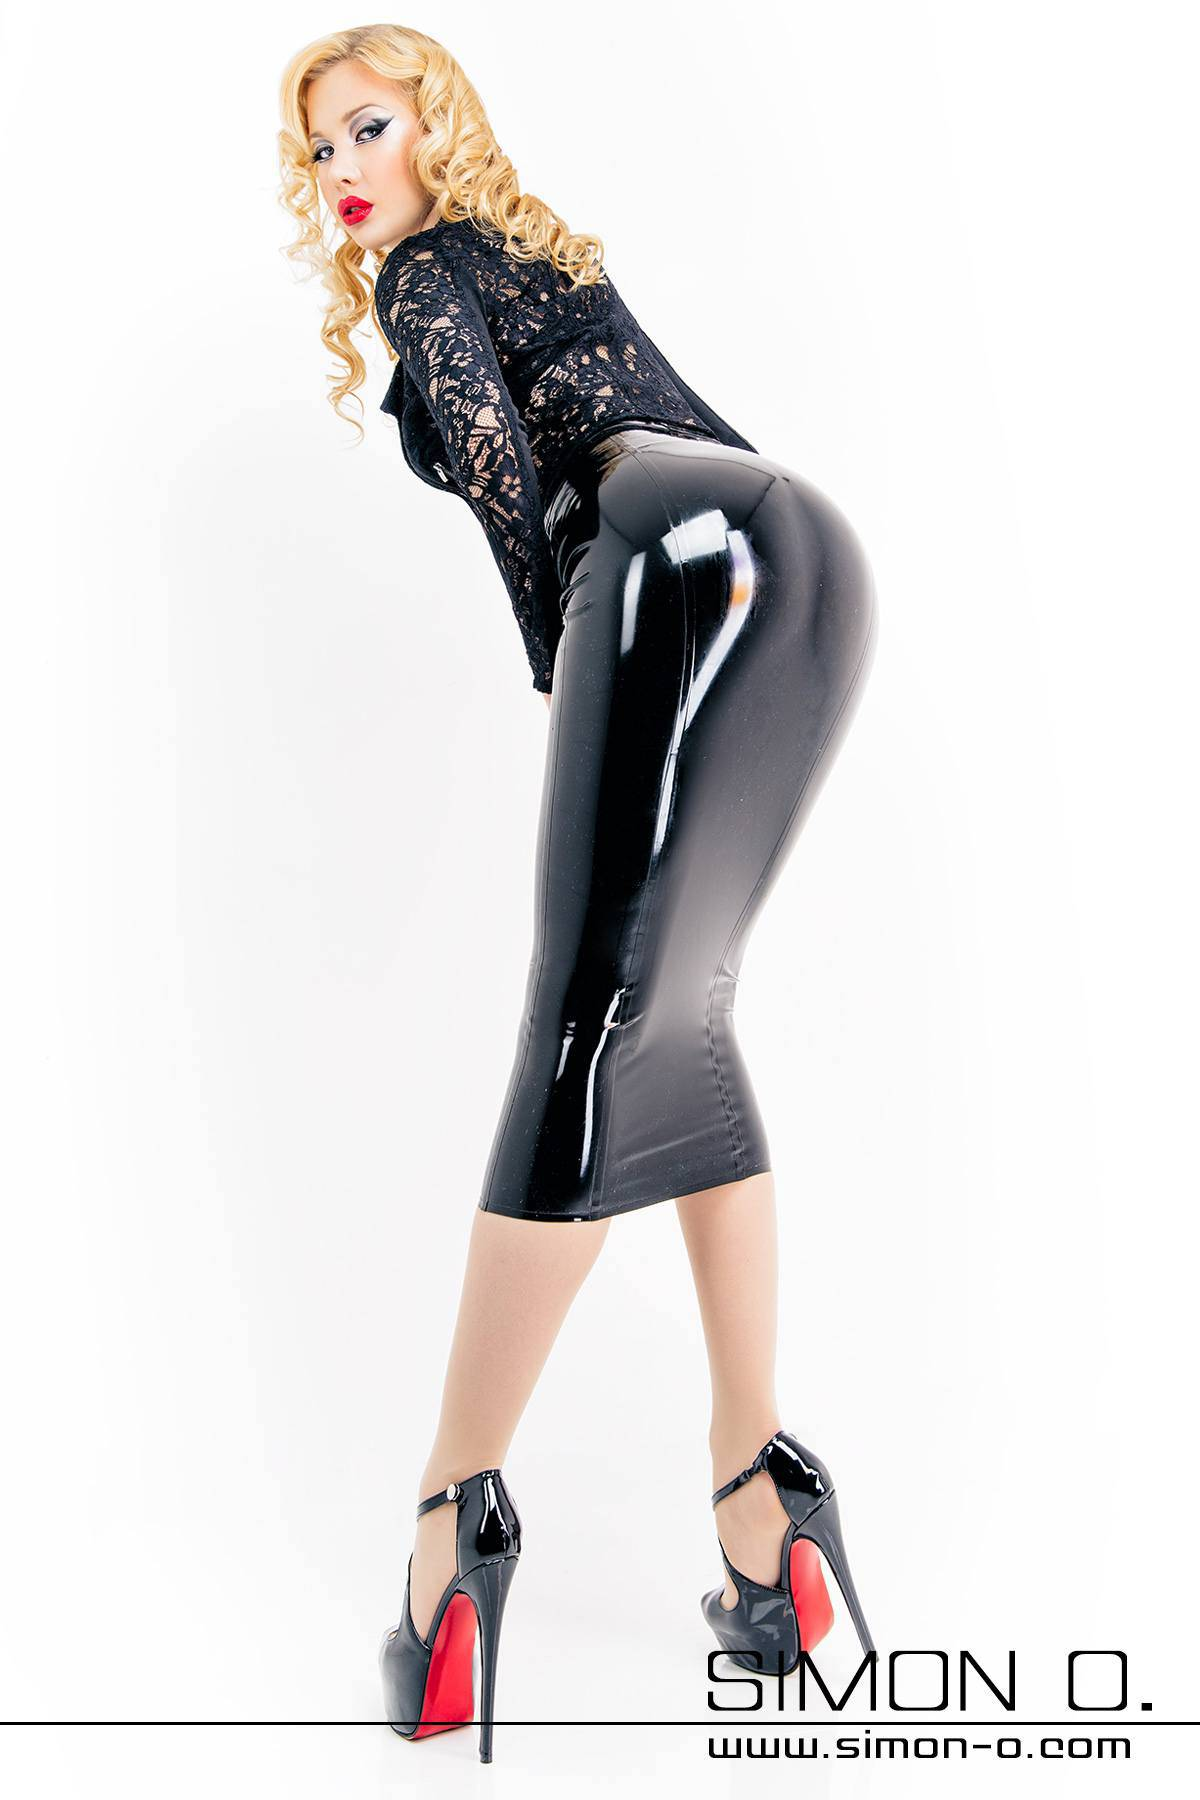 Tight Pencil Skirt Made of Latex This long, skin tight pencil skirt made of latex fascinates with its elegance and creates a stunning erotic gait. However, it …